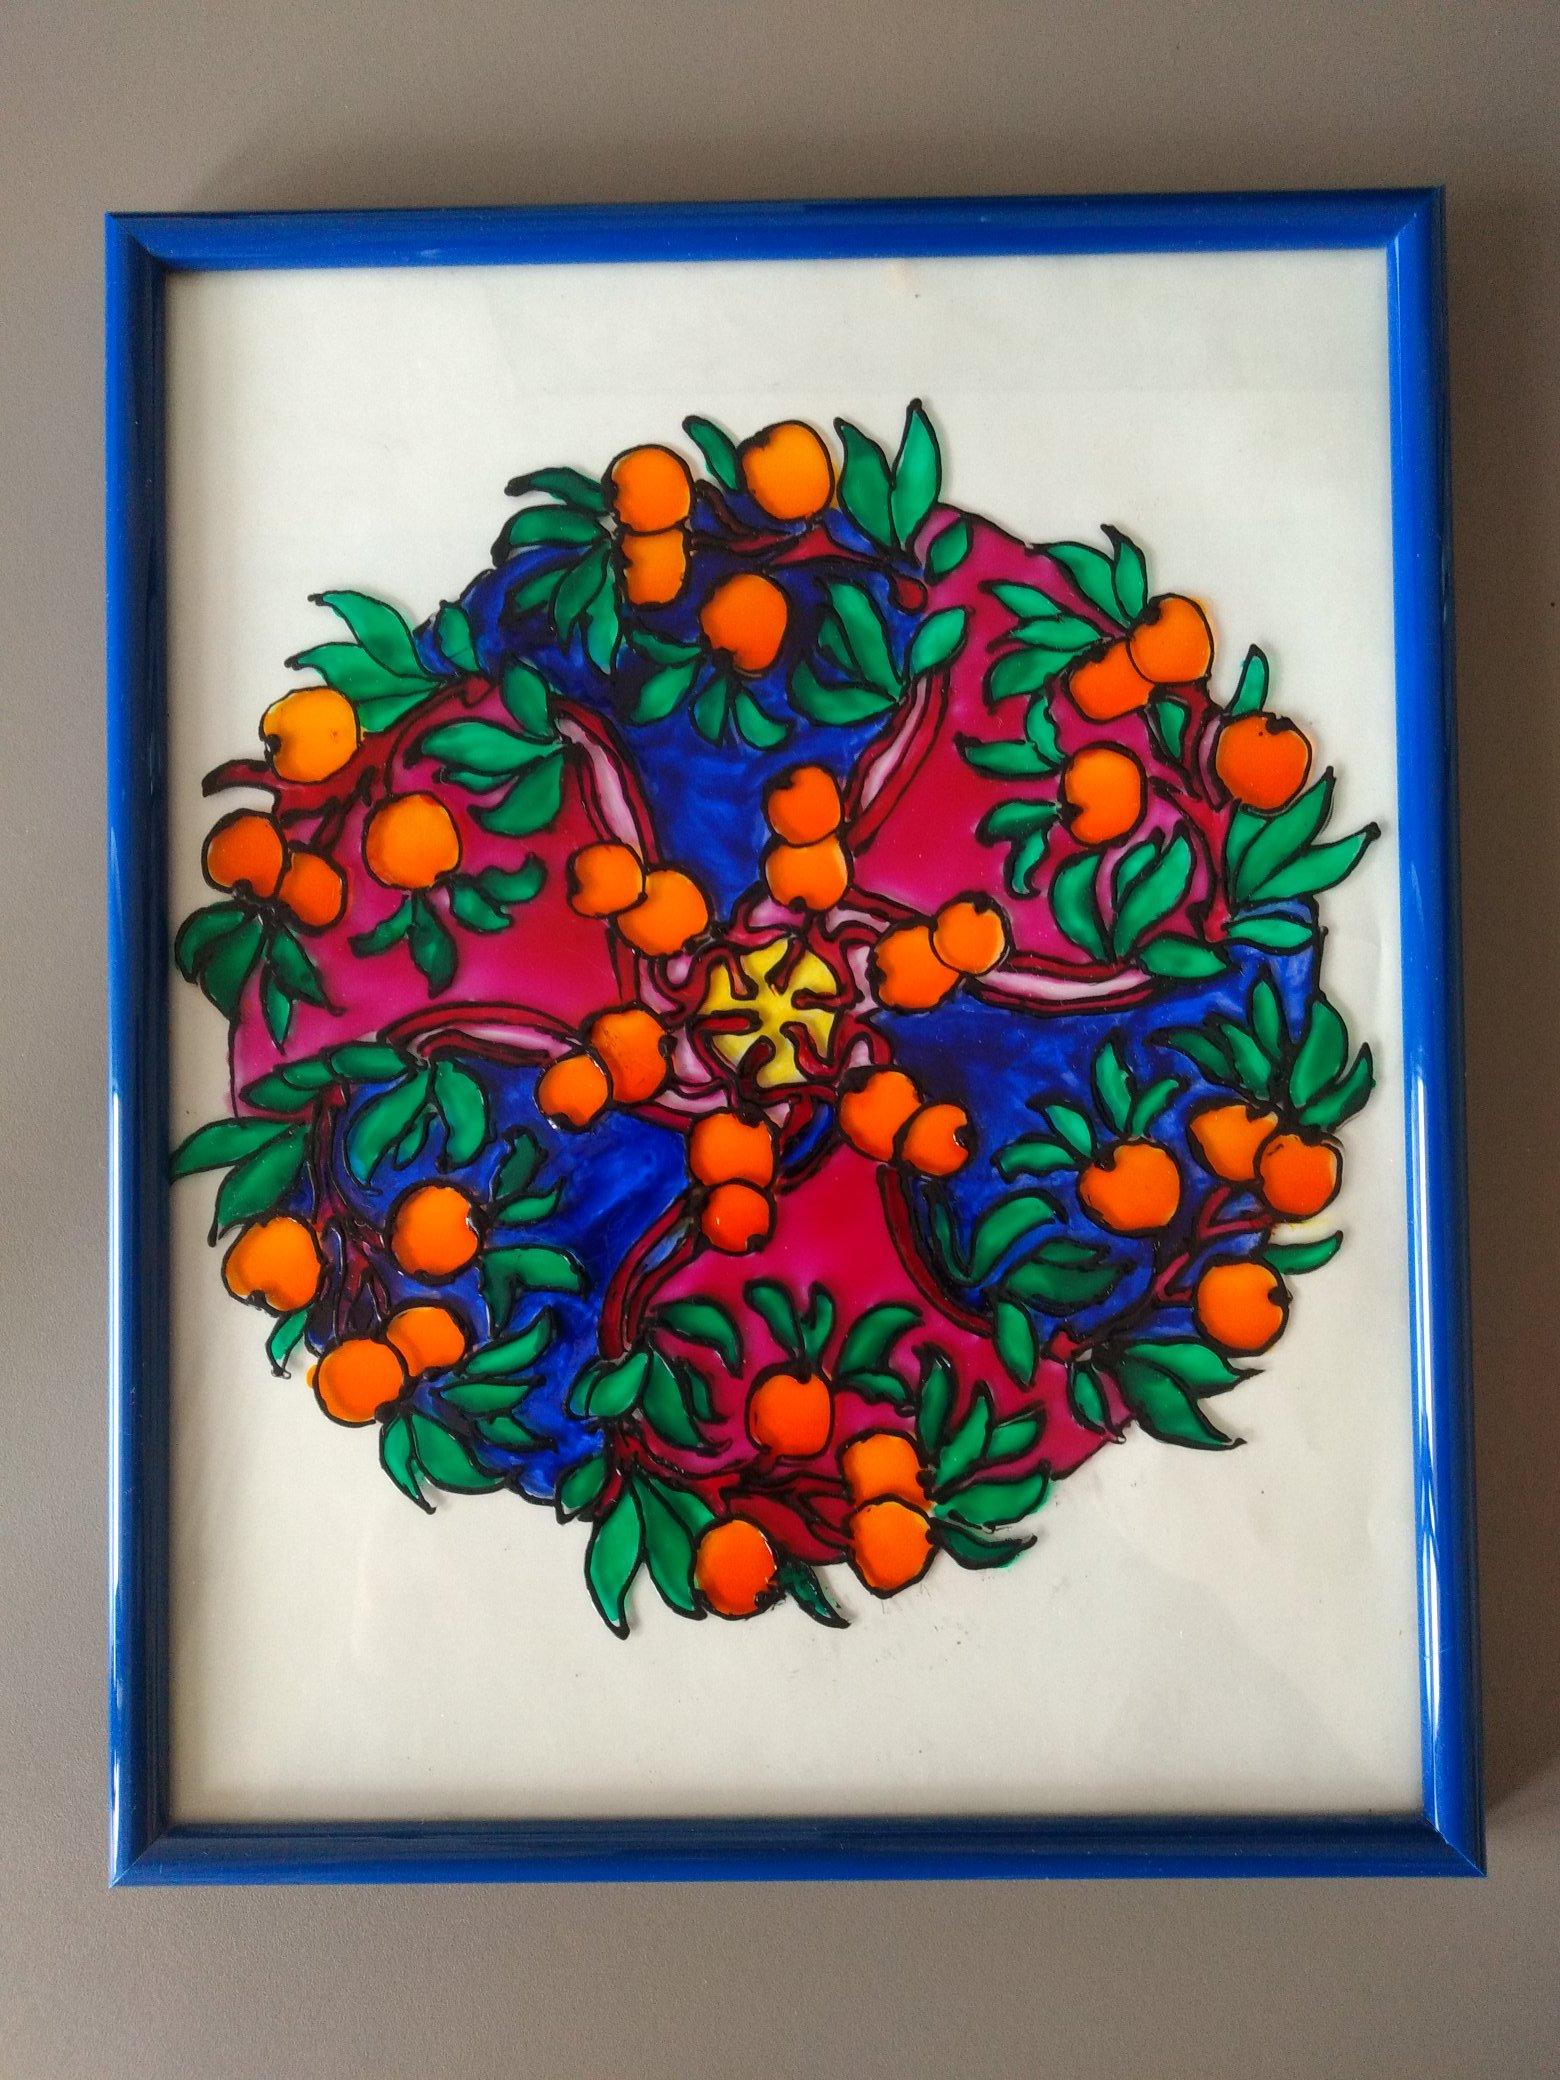 Painting on glass as a gift for your mother on mother's day or international women's day